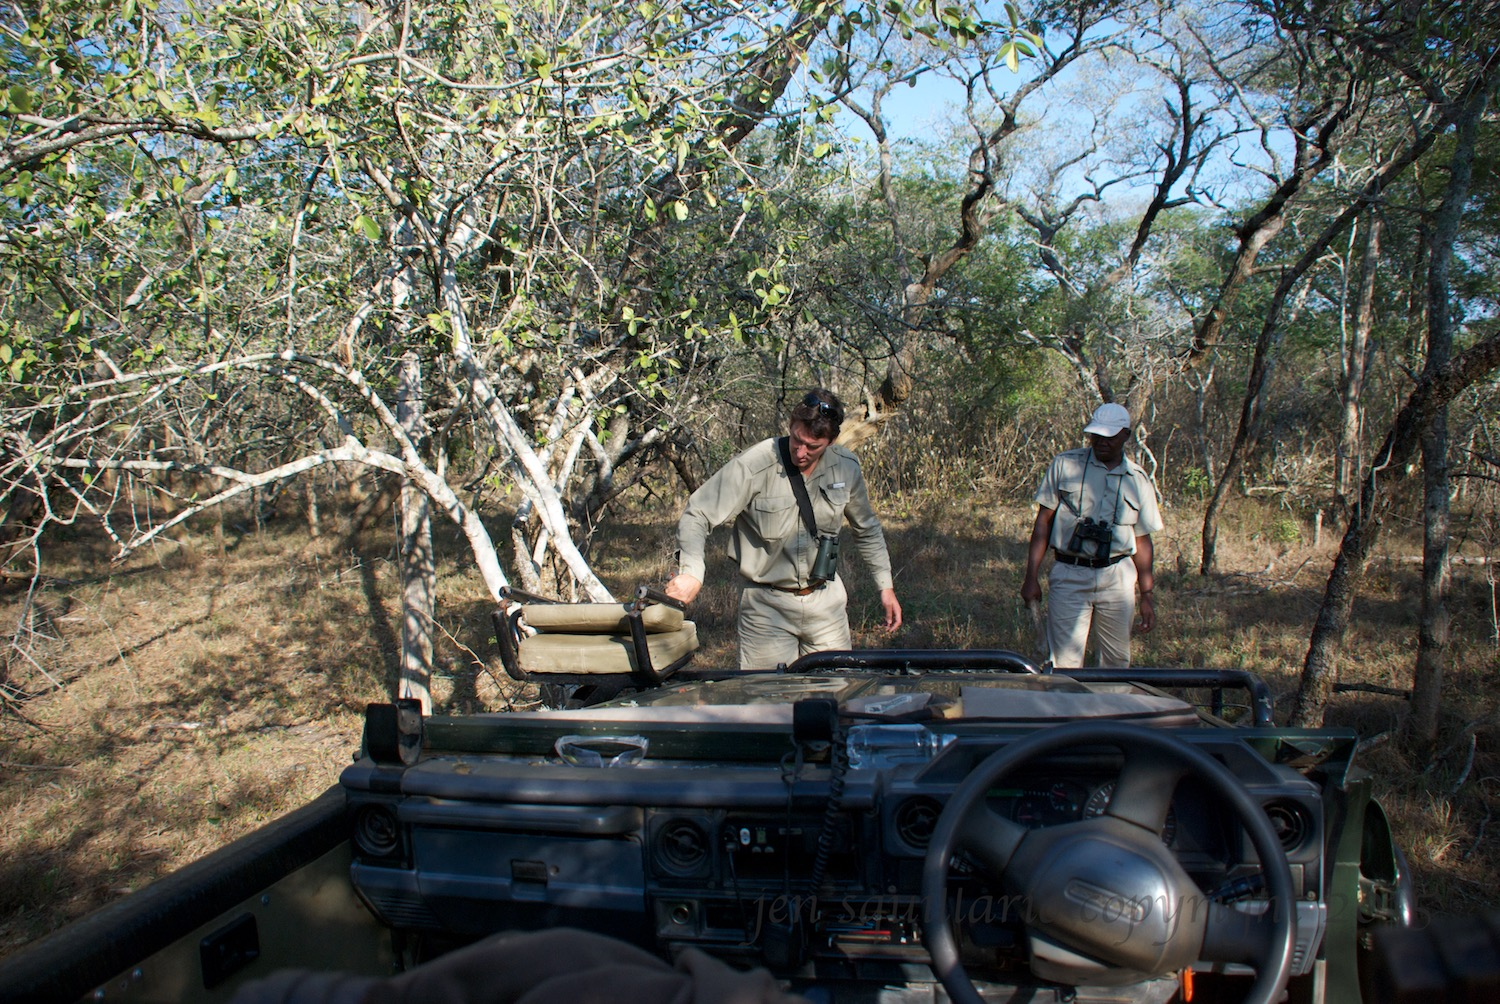 Giles and Able dealing with a stubborn tree while tracking the lioness and cubs.  I'm pretty sure Able was laughing the entire time.